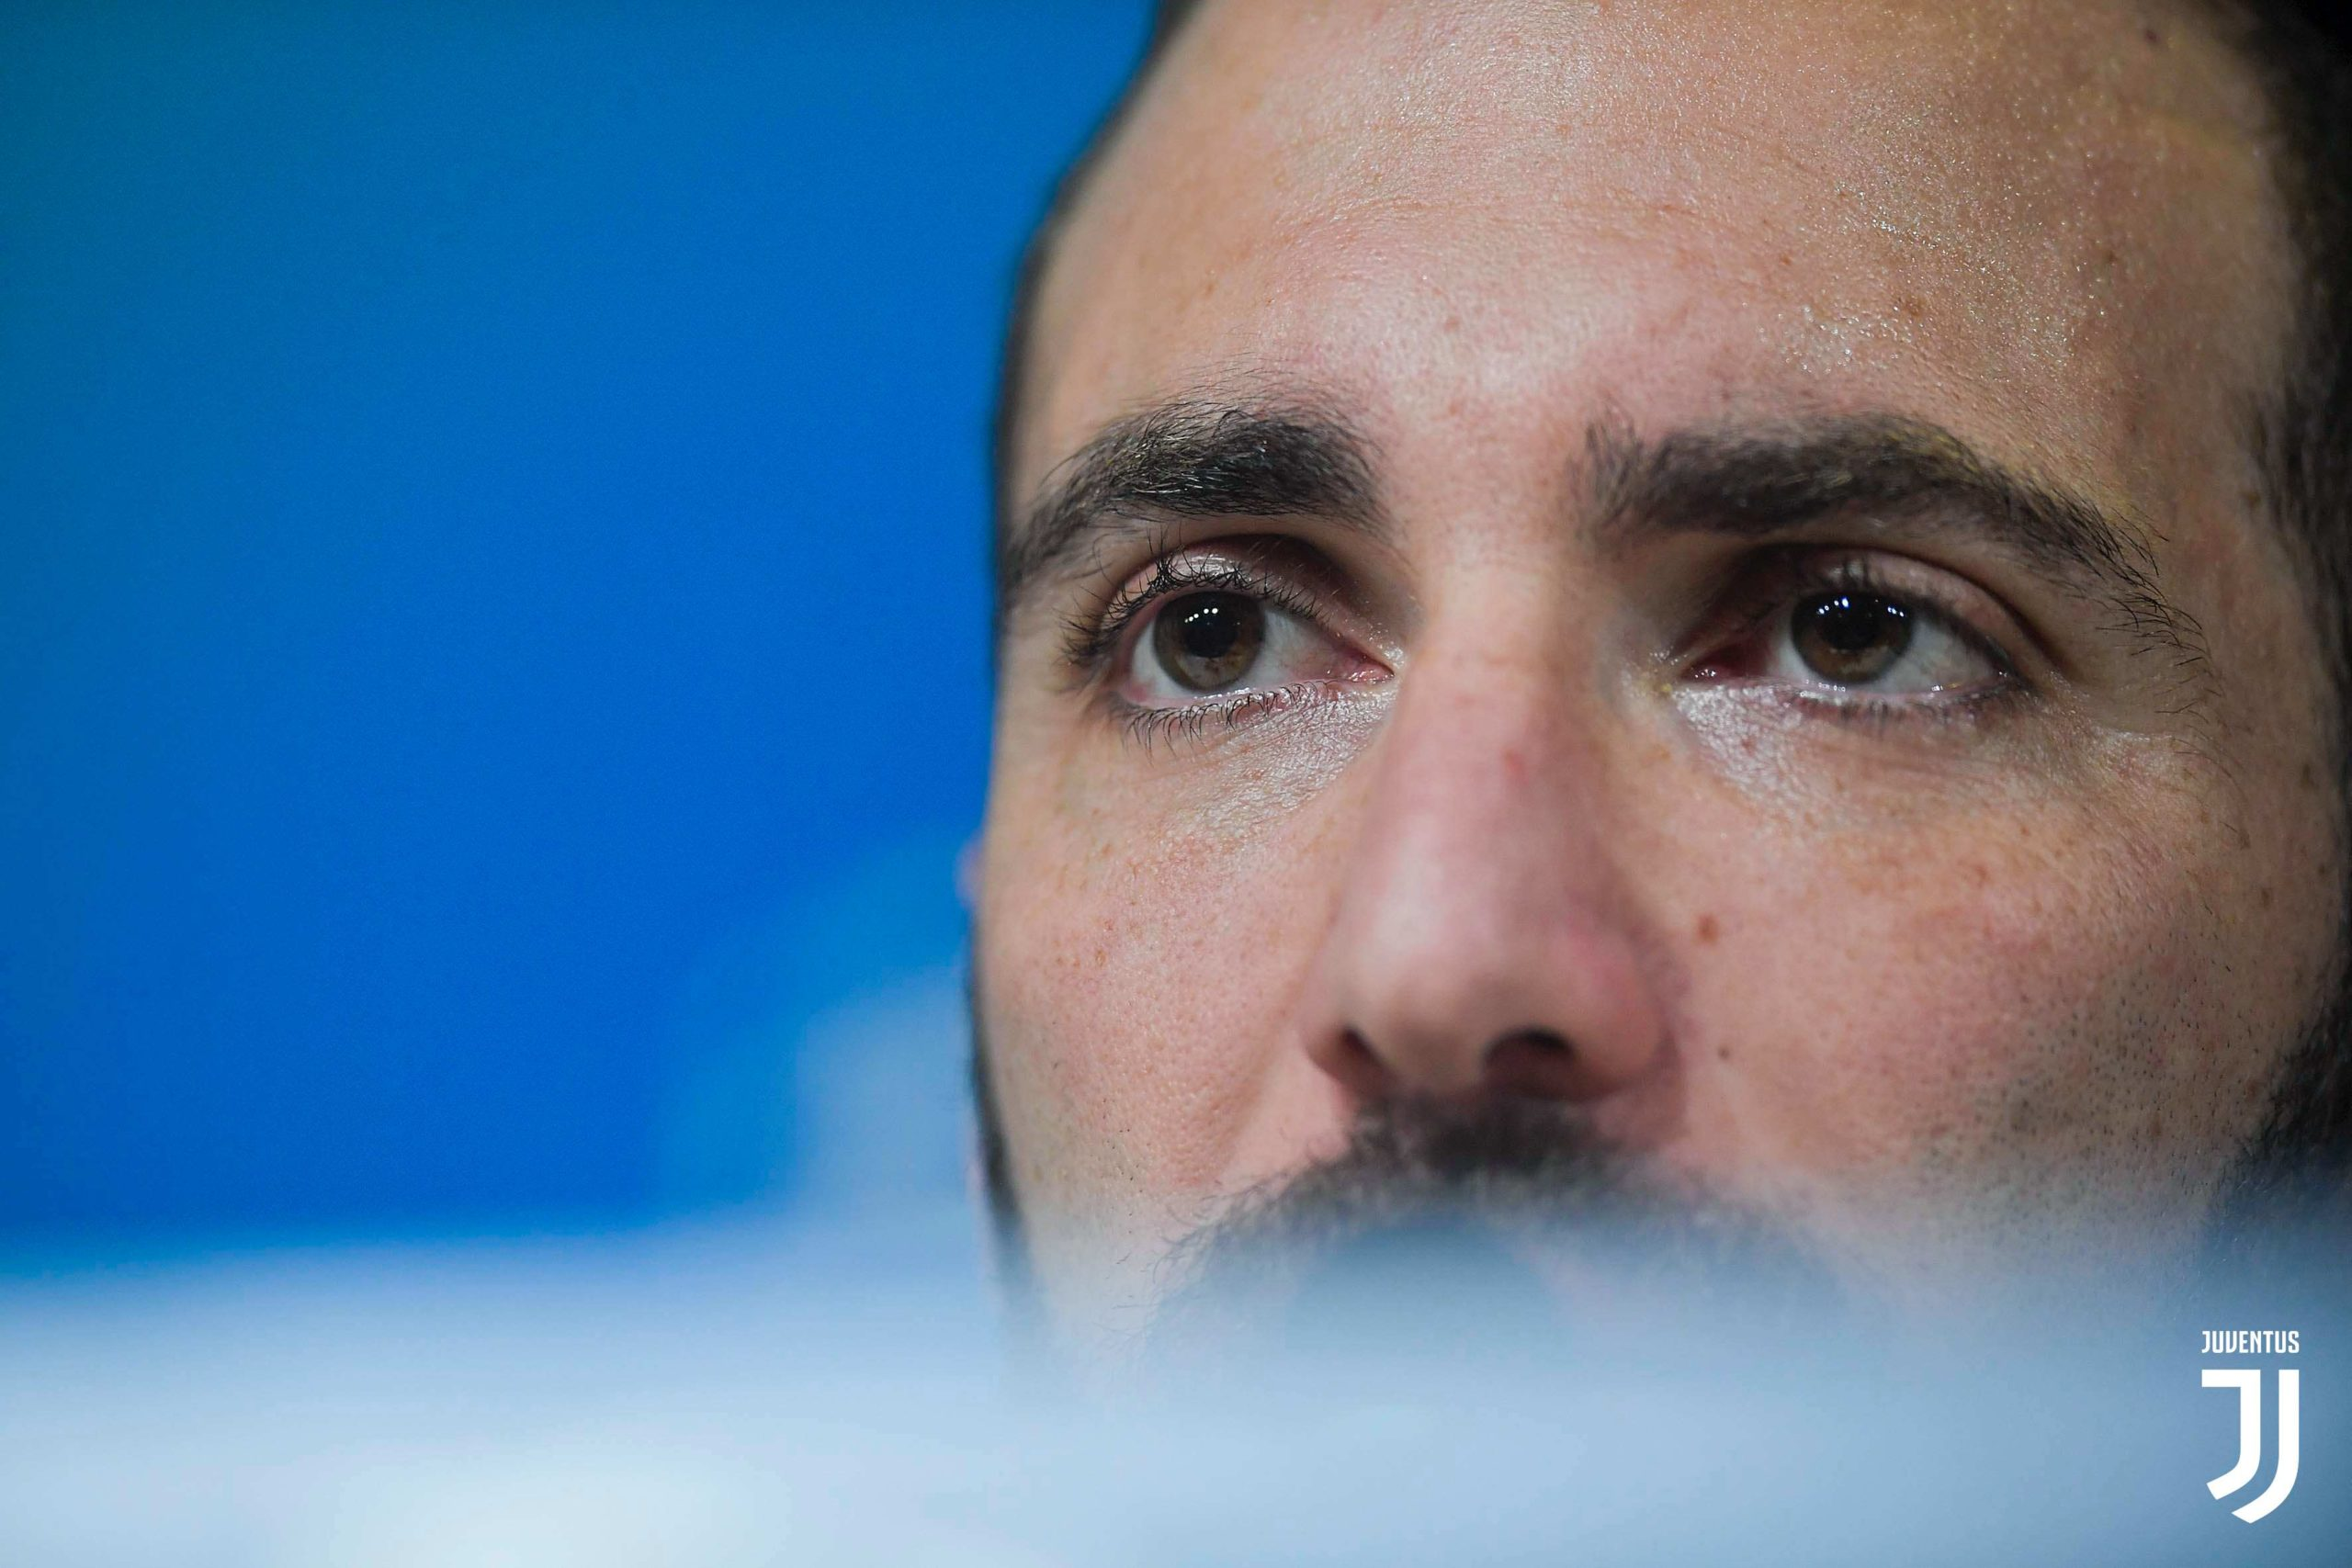 Higuain forced to end his contract with Juventus, joins Inter Miami CF